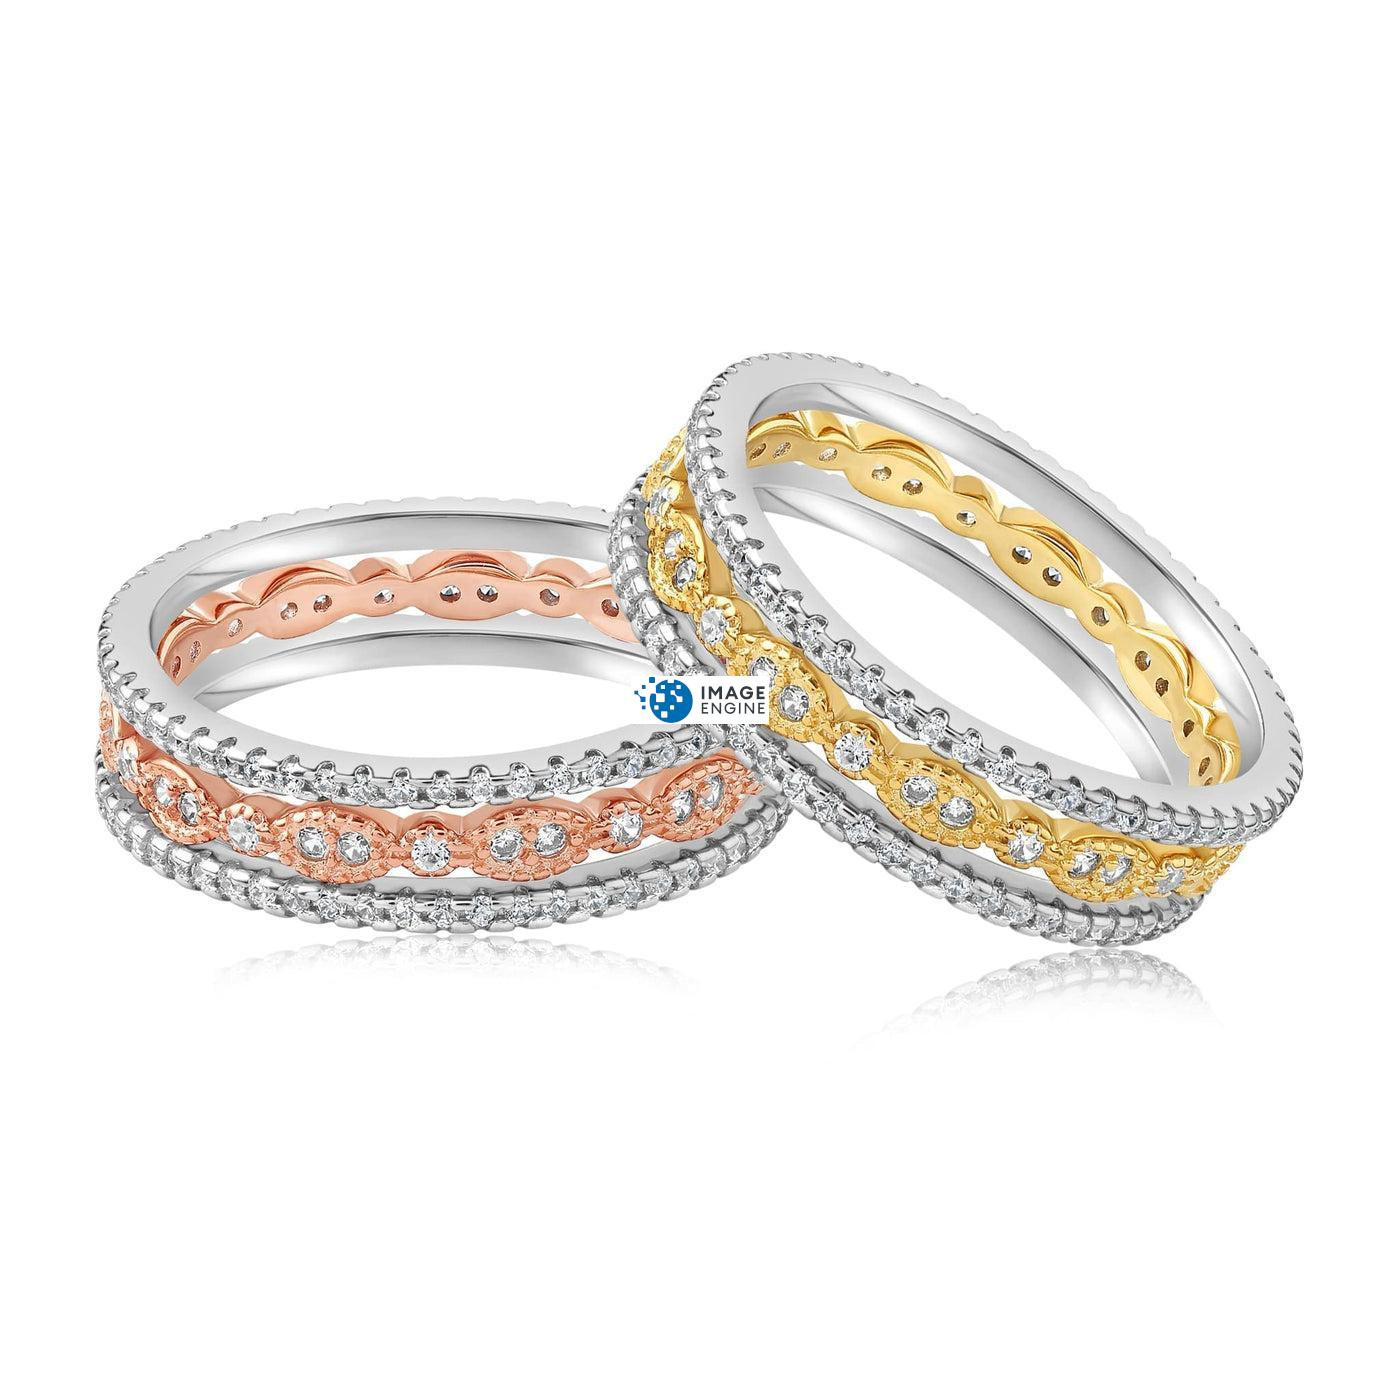 Juliana 3 Ring Set - Front View Side by Side - 18K Rose Gold Vermeil and 18K Yellow Gold Vermeil